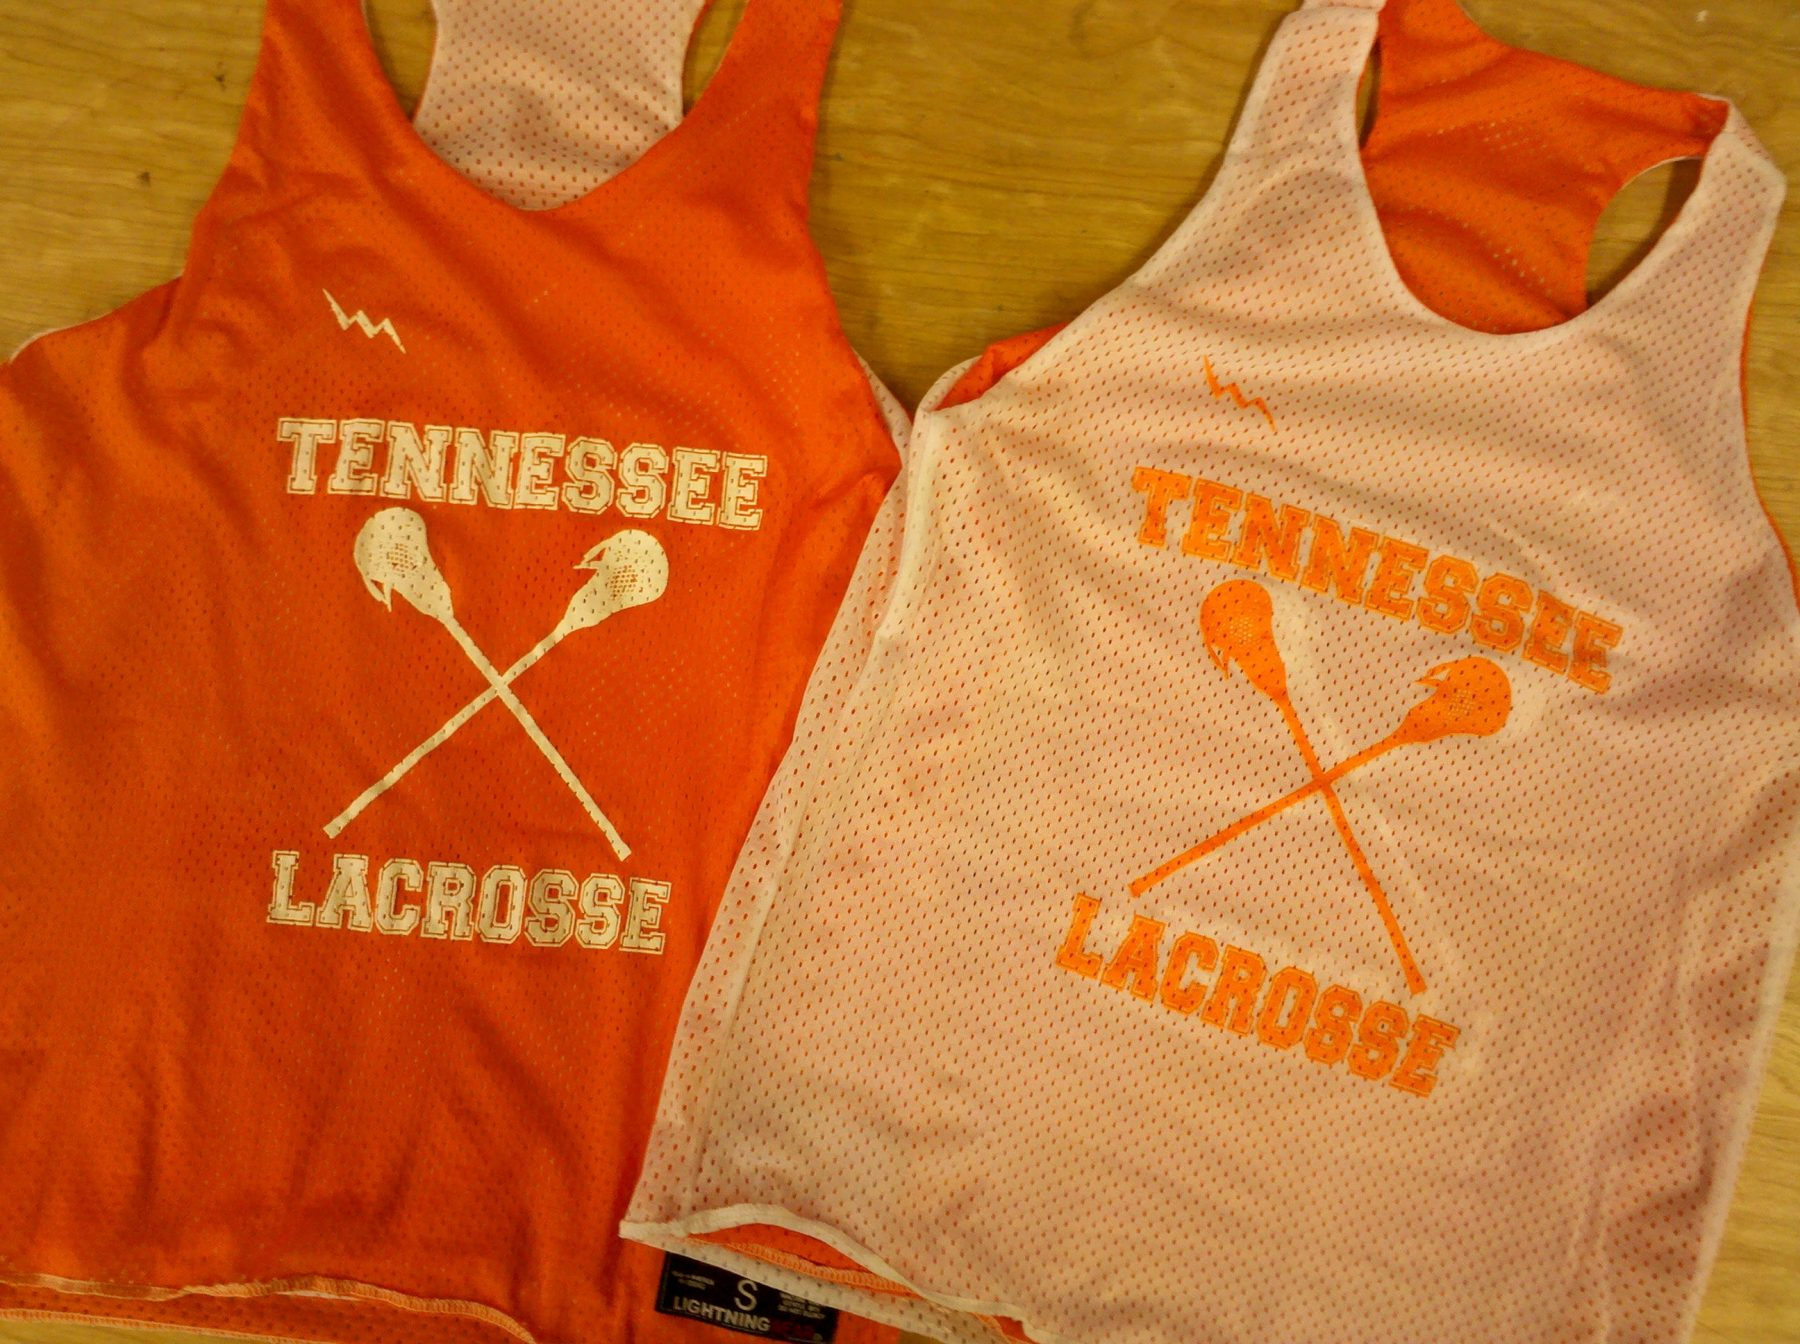 tennessee pinnies, design tennessee pinnies, create tennessee pinnies, make your own tennessee pinnies, customize tennessee pinnies, customizable tennessee pinnies, custom tennessee pinnies, buy tennessee pinnies, design your own tennessee pinnies, make tennessee pinnies, make your tennessee pinnies, design my own tennessee pinnies, design my tennessee pinnies, tennessee pinnies designer, tennessee pinnies design, tennessee pinnies make your own, tennessee pinnies customize, tennessee pinnies buy, tennessee pinnies design your own, tennessee pinnies custom, tennessee pinnies make, tennessee pinnies design my own, tennessee pinnies design my, designer tennessee pinnies, order tennessee pinnies, youth tennessee pinnies, mens tennessee pinnies, womens tennessee pinnies, girls tennessee pinnies, boys tennessee pinnies,